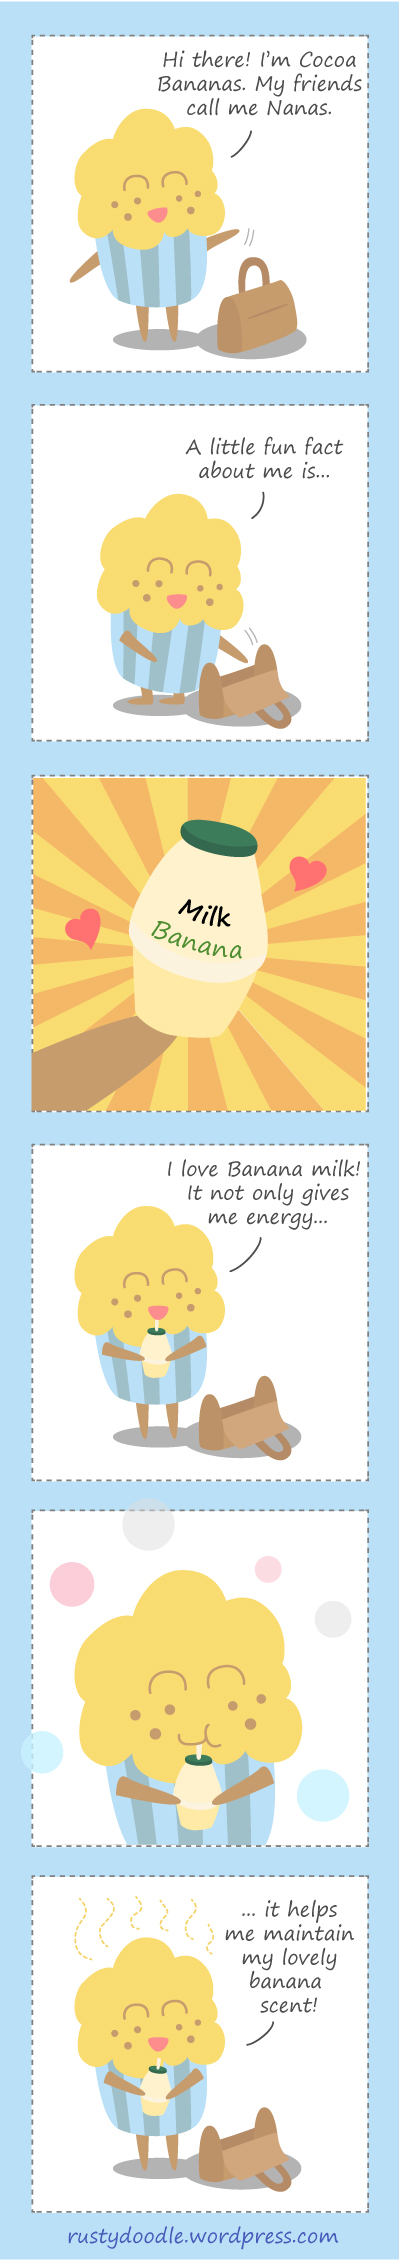 Comic Strip on Cupcake and Banana Milk